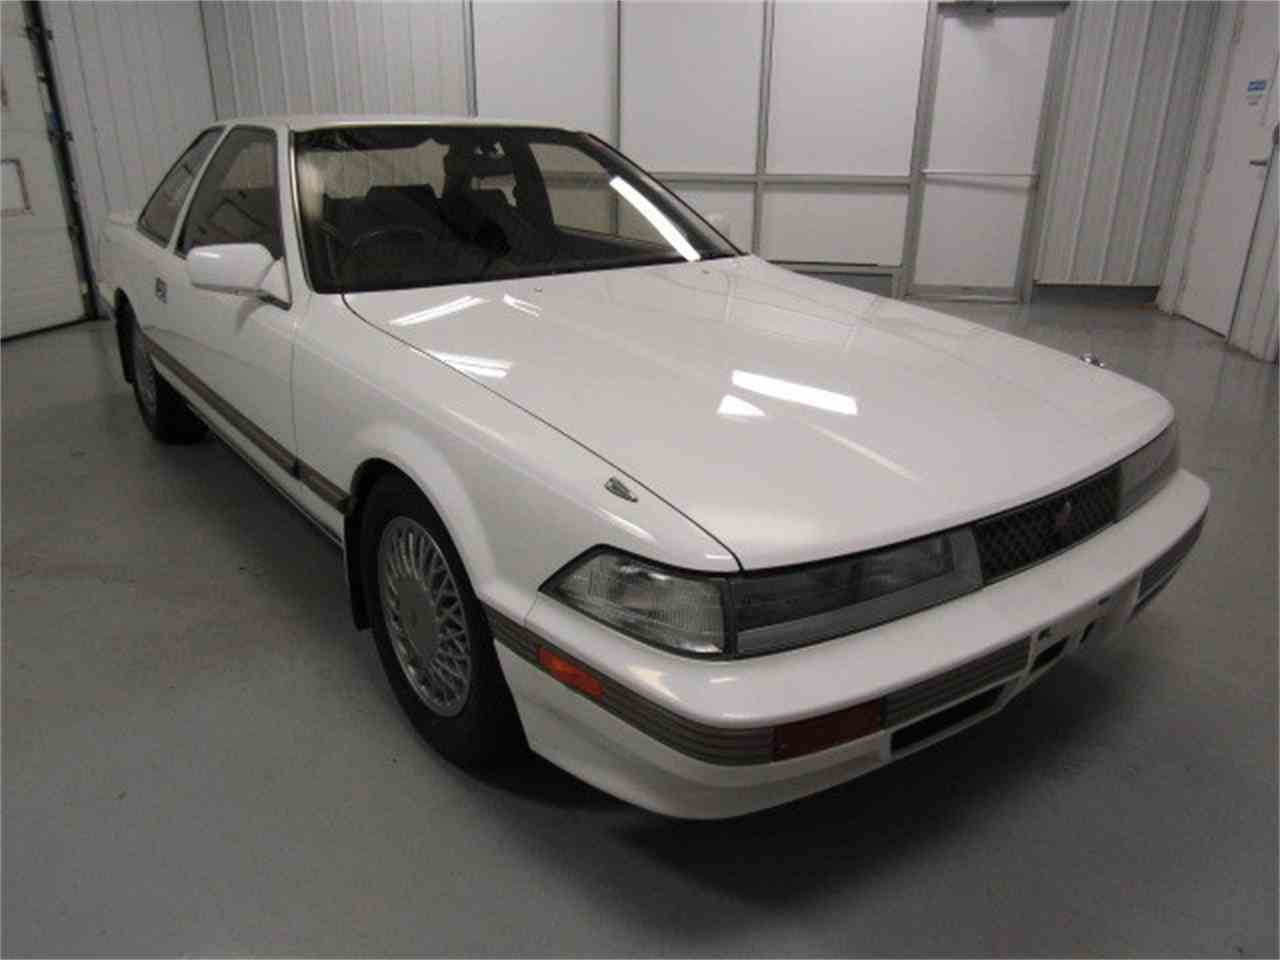 Large Picture of 1987 Toyota Soarer located in Christiansburg Virginia - $7,999.00 Offered by Duncan Imports & Classic Cars - JLB2